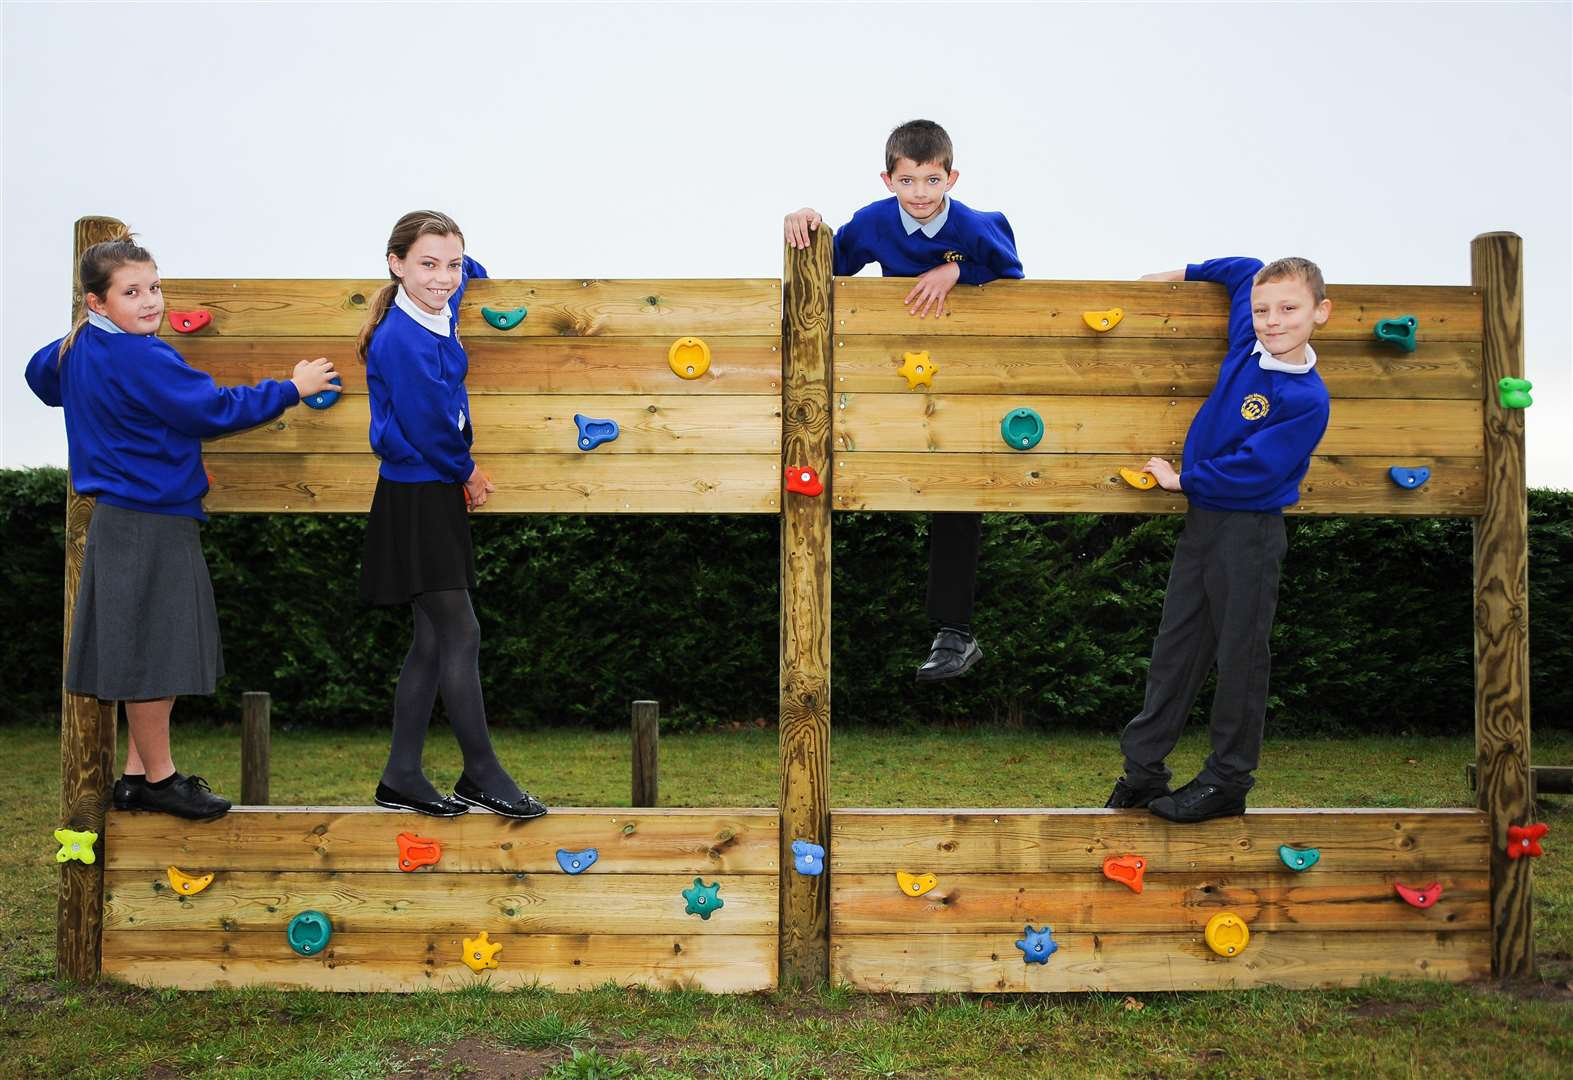 Making playtime more enjoyable for West Norfolk school